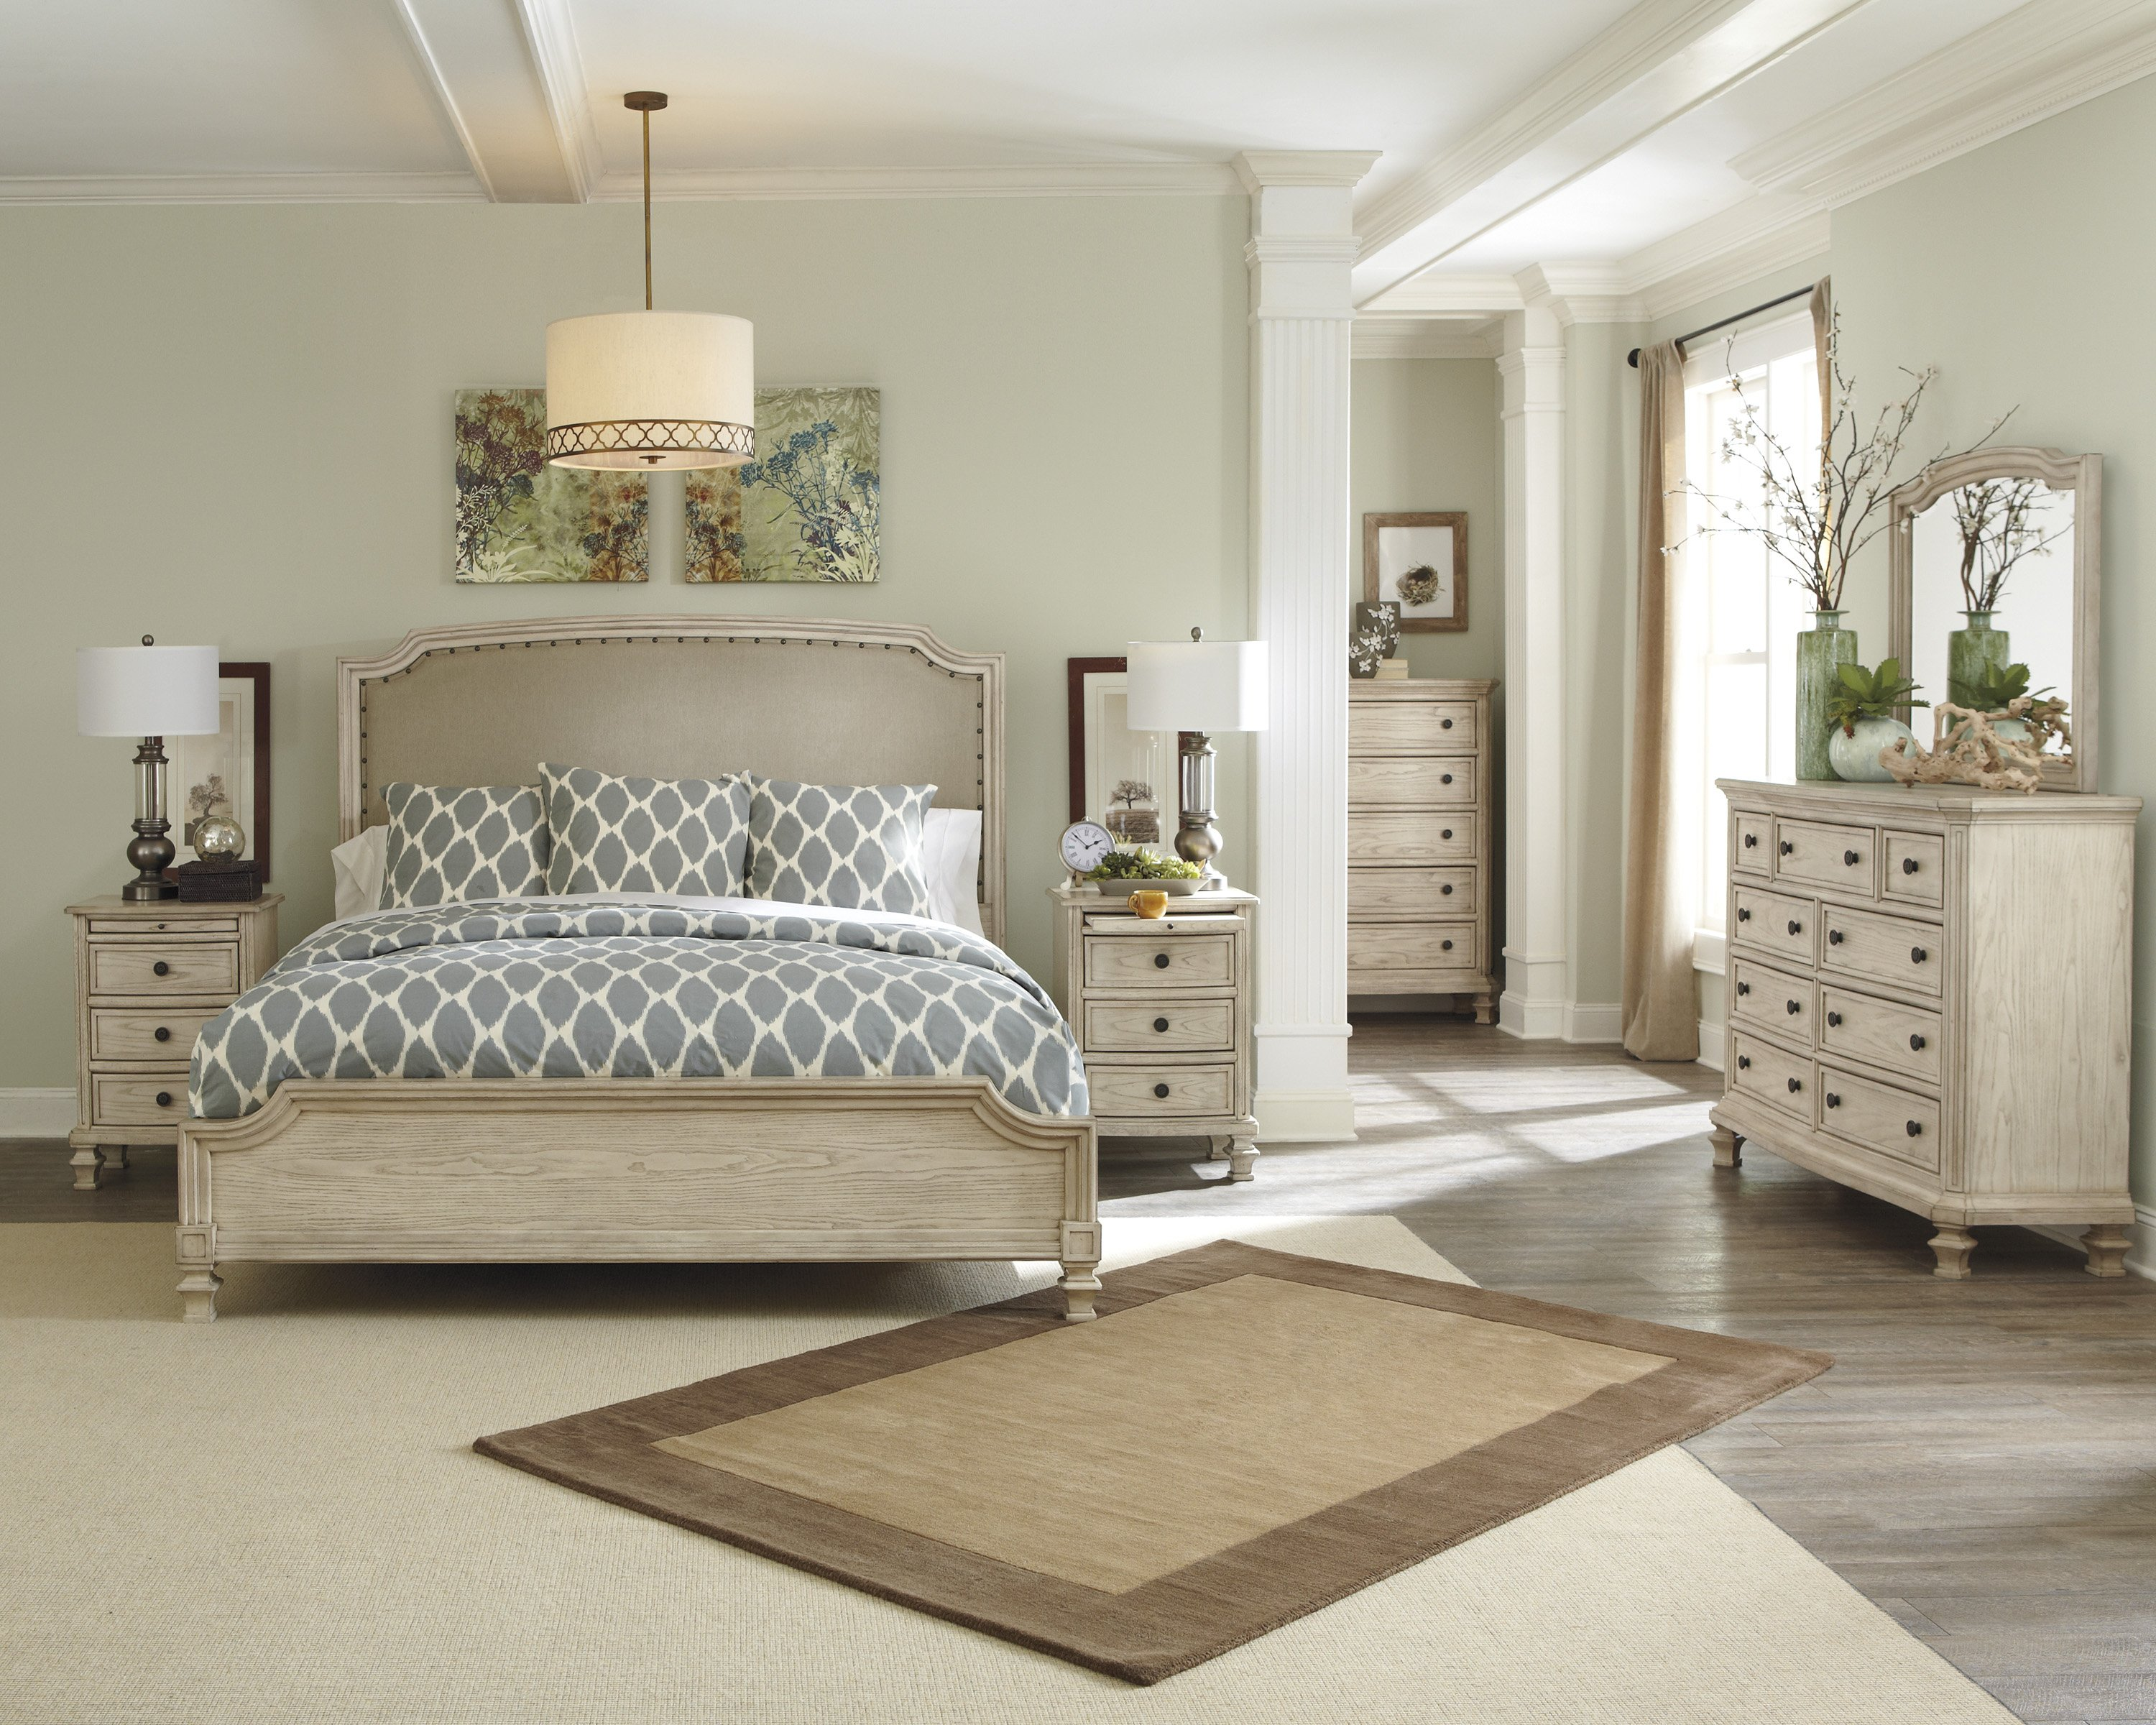 Ashley Furniture Bedroom Suites 15 Top White Bedroom Furniture Might Be Suitable For Your